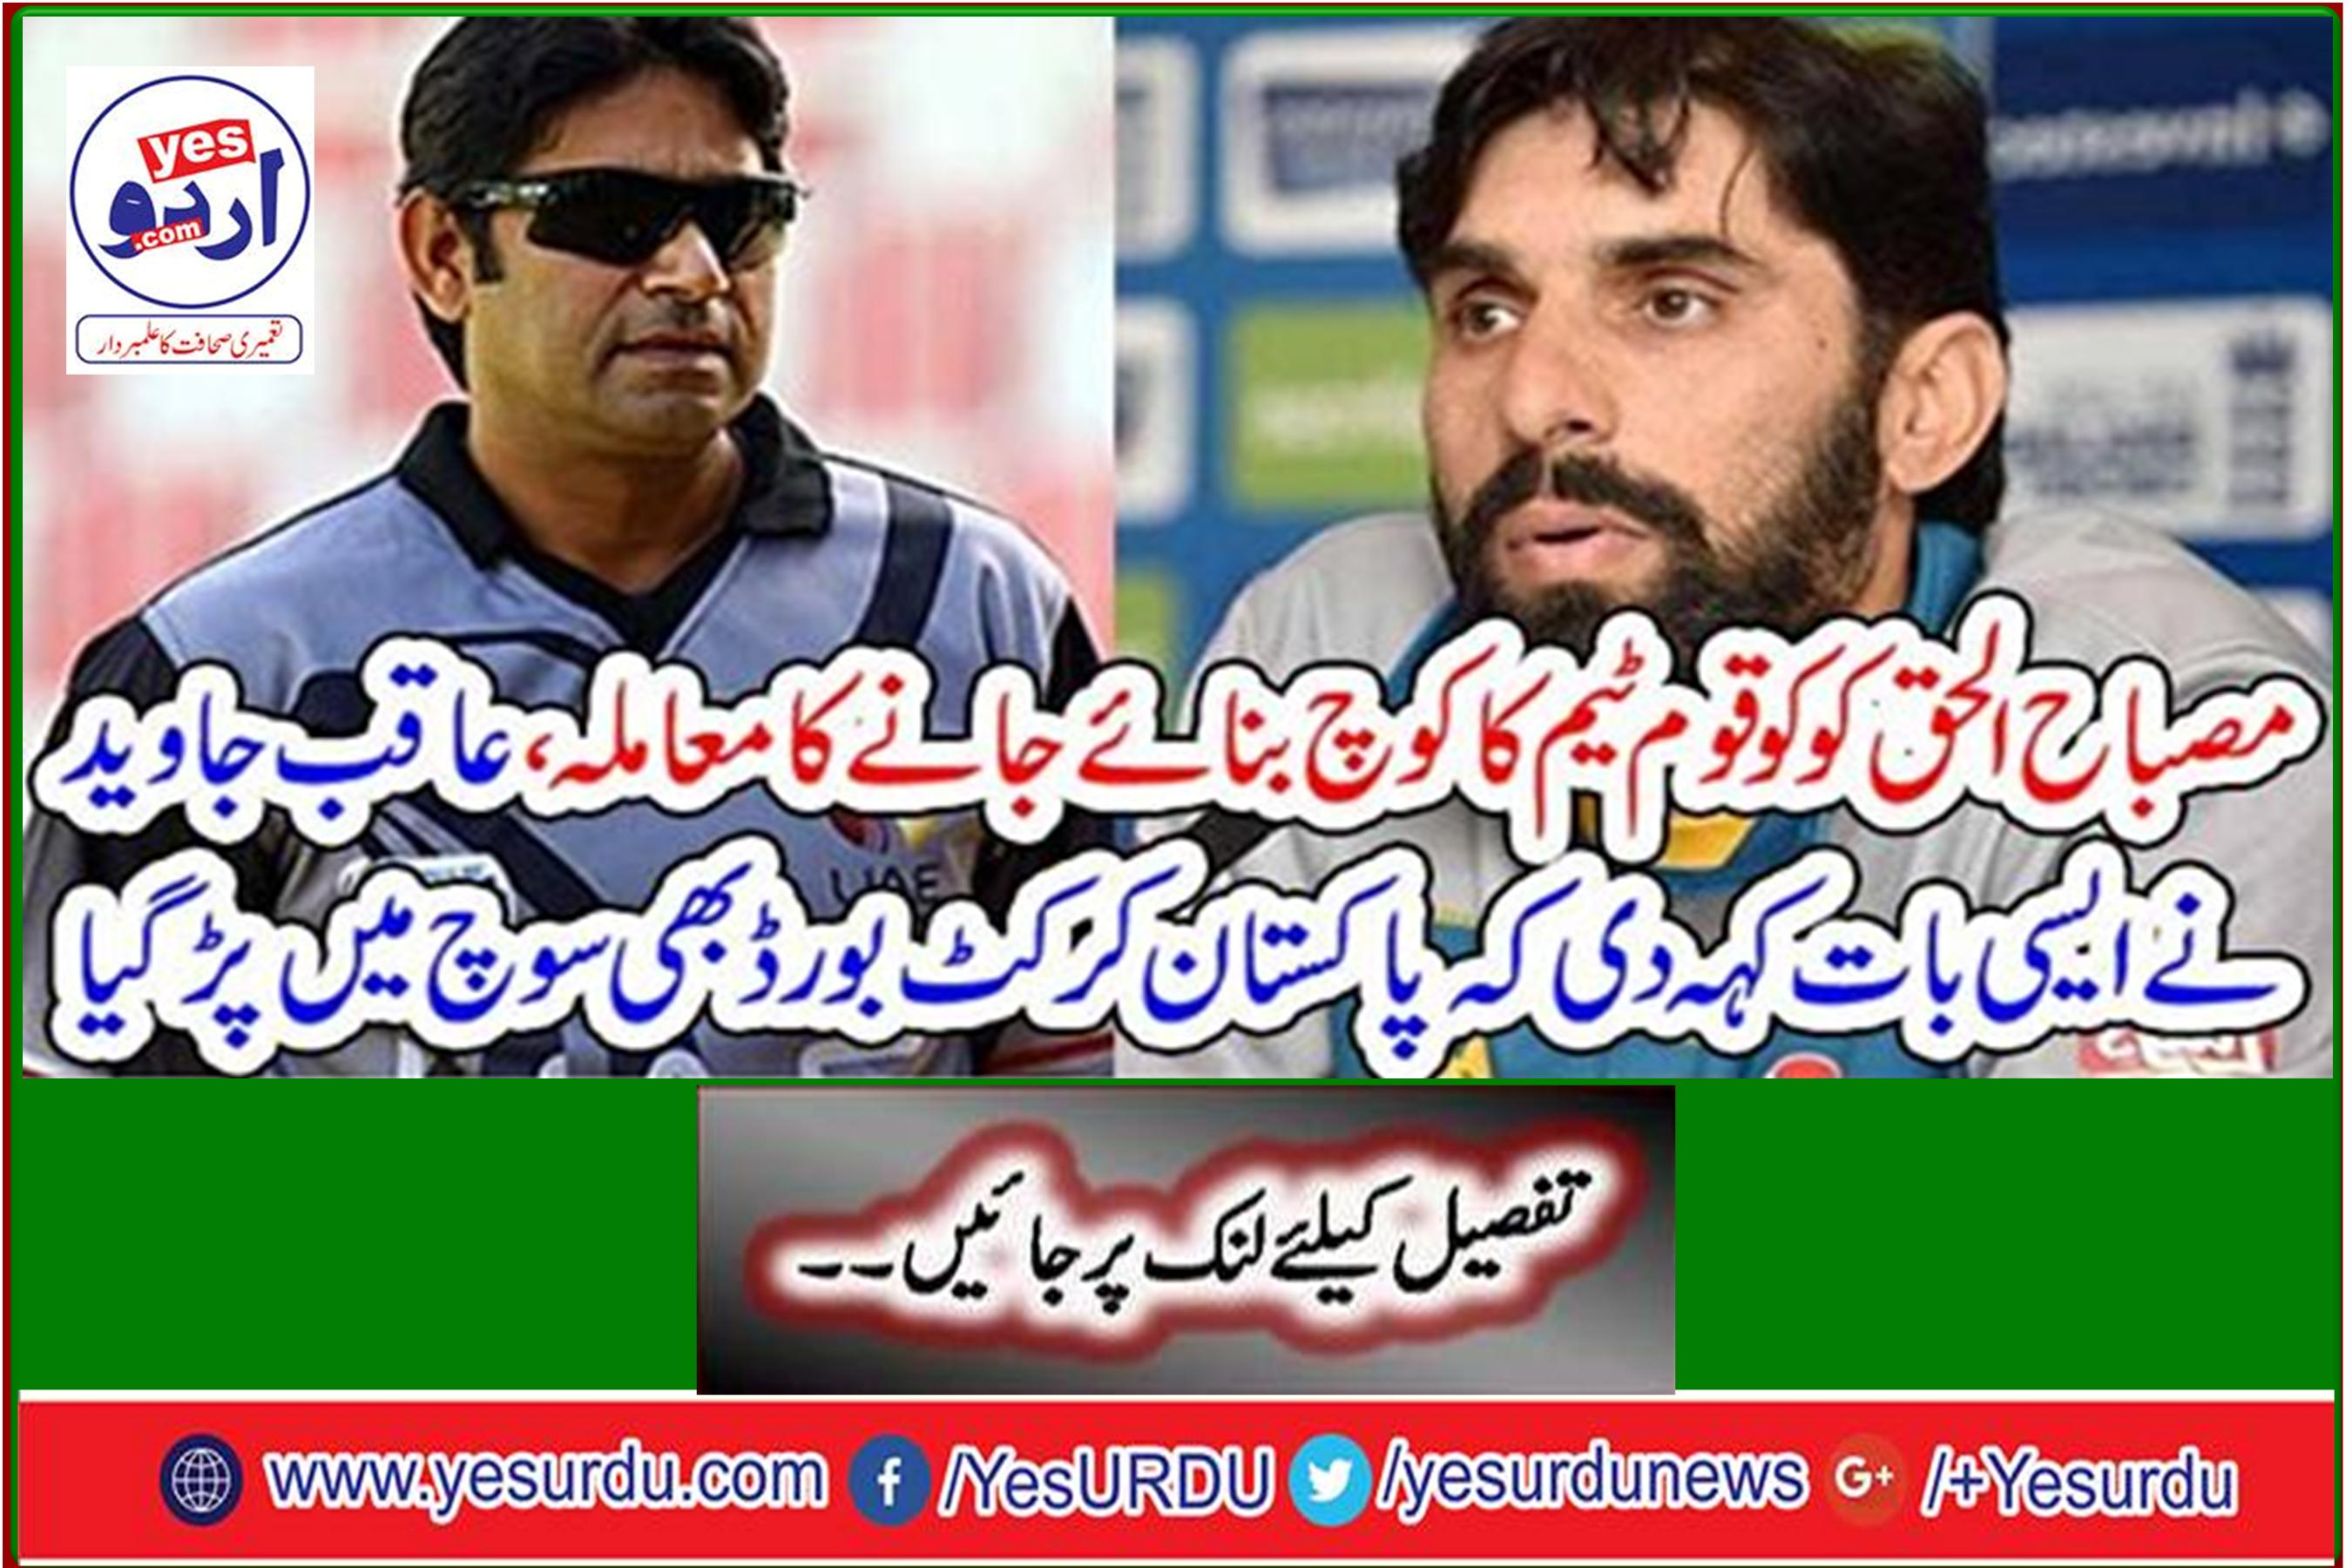 The issue of Misbah-ul-Haq being made coach of the national team, Aqeb Javed said that the Pakistan Cricket Board was also thinking.